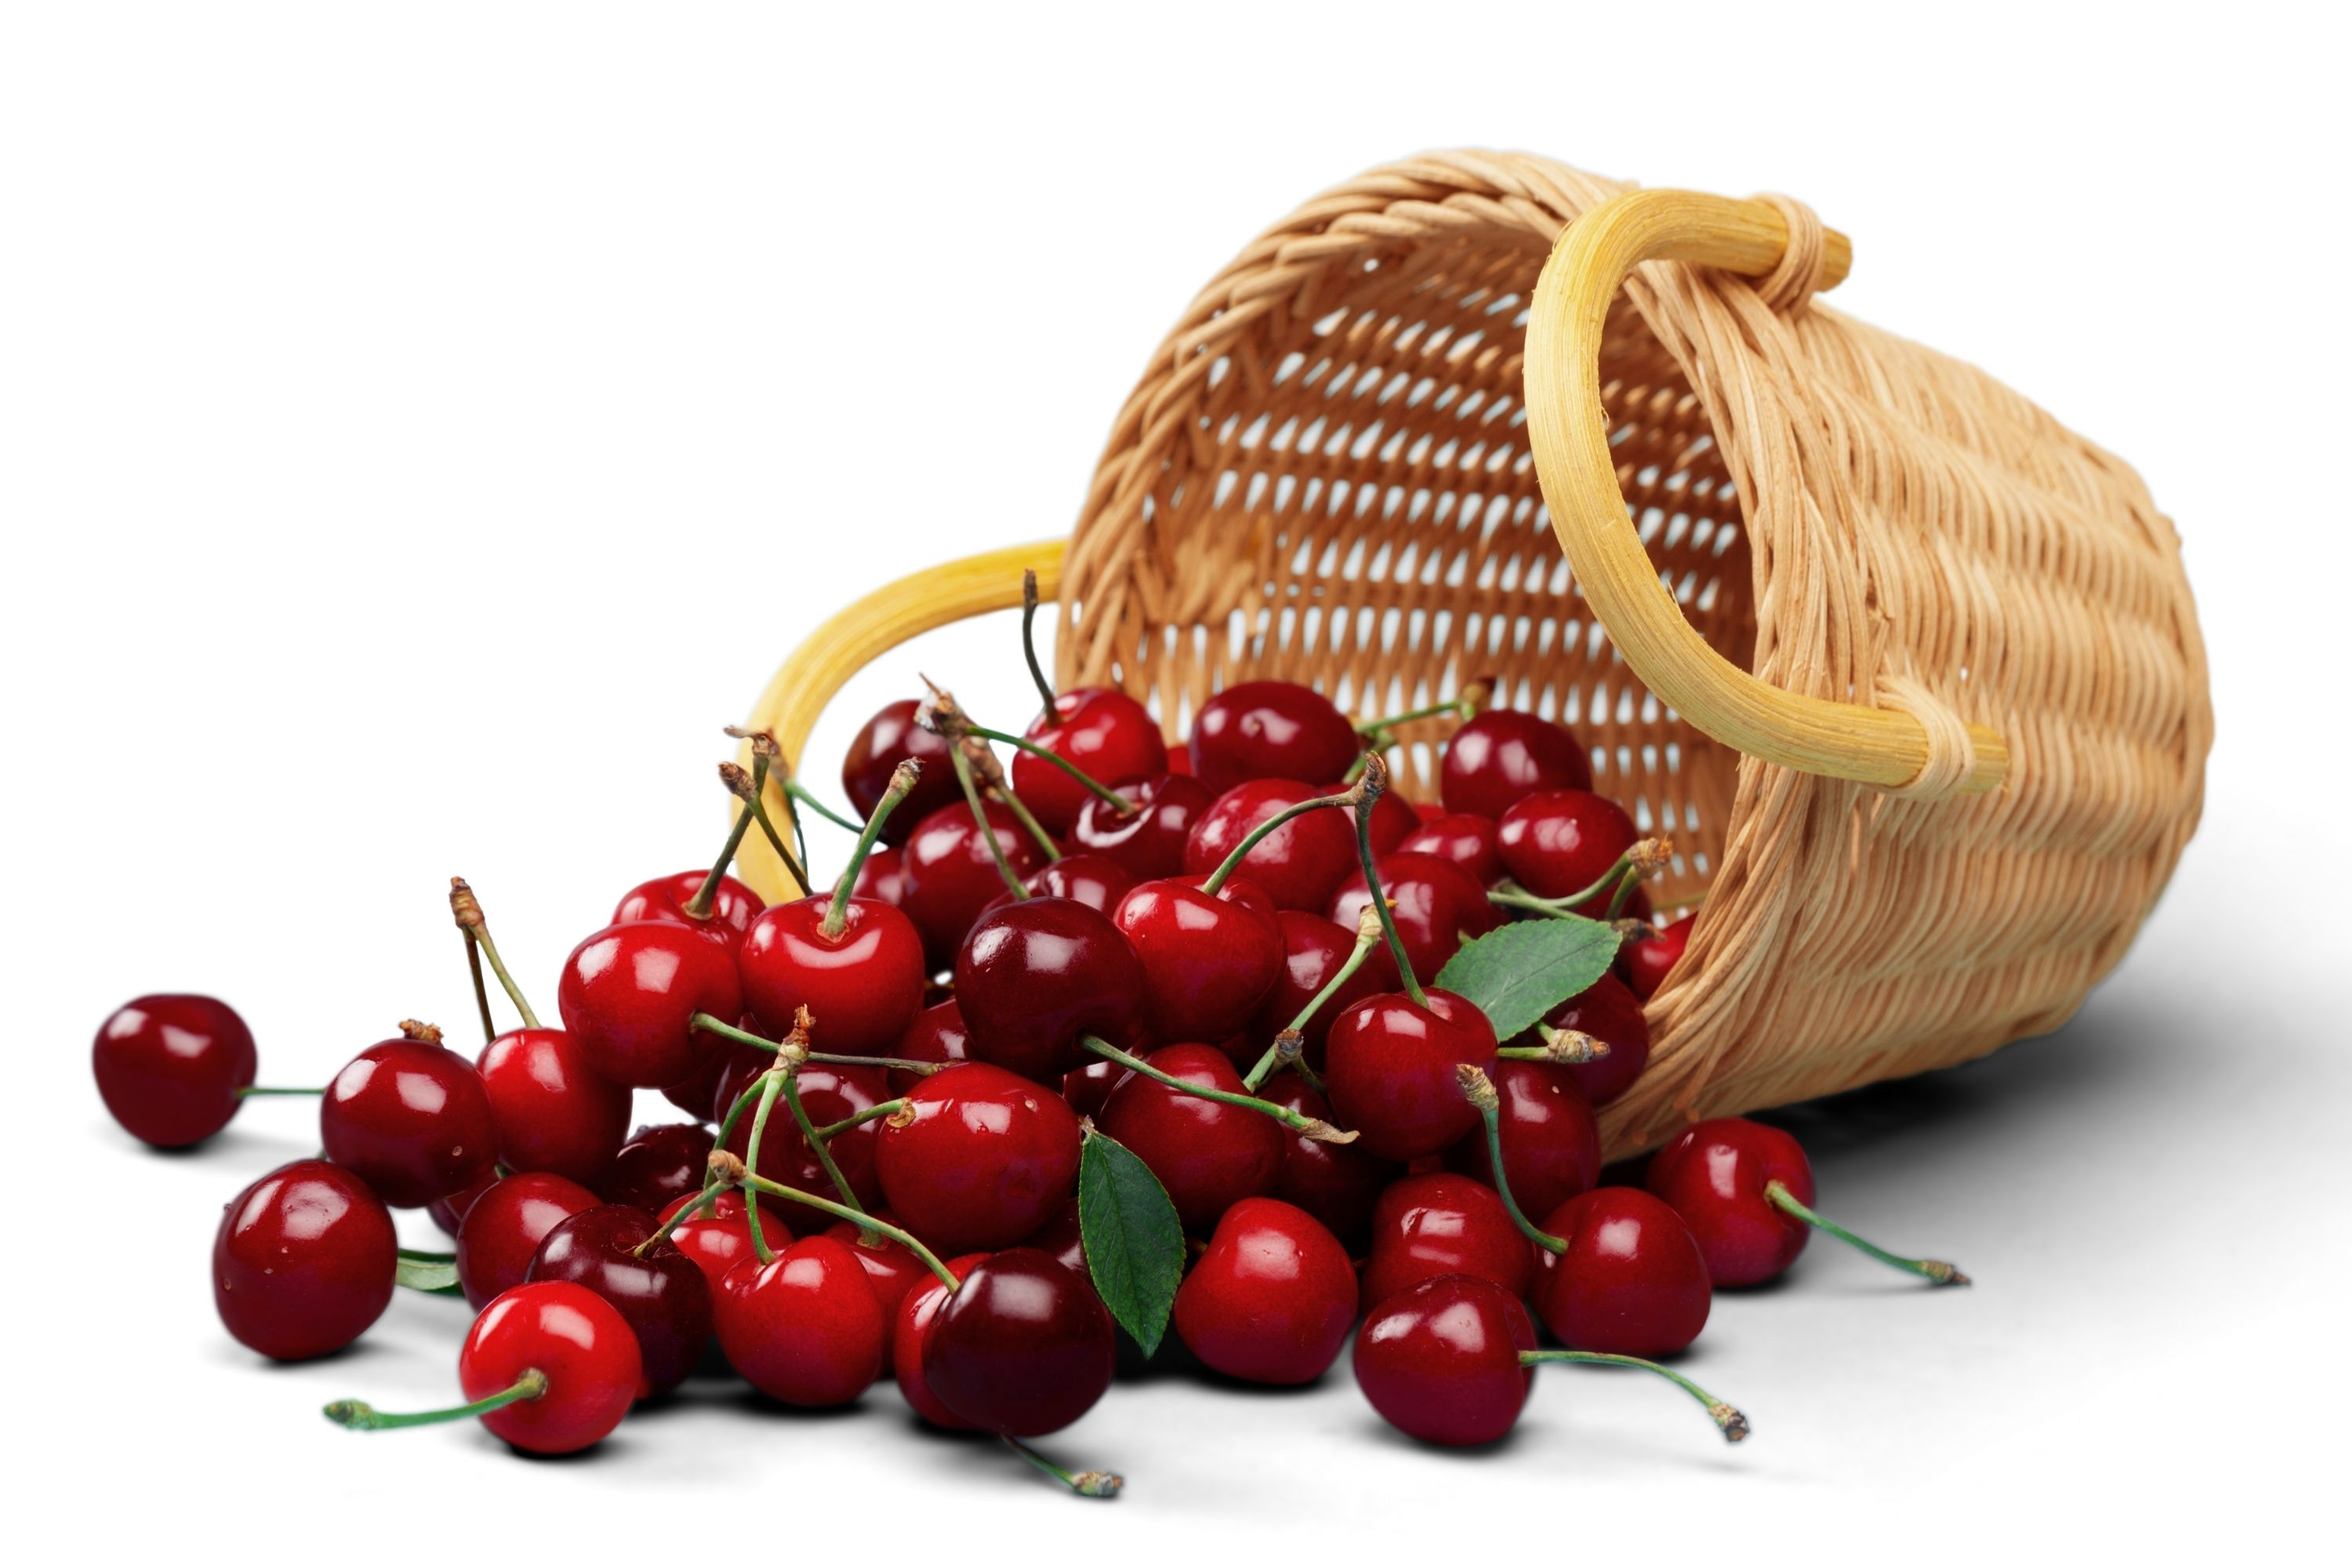 Two Types Of Cherry You Can Find On the Market